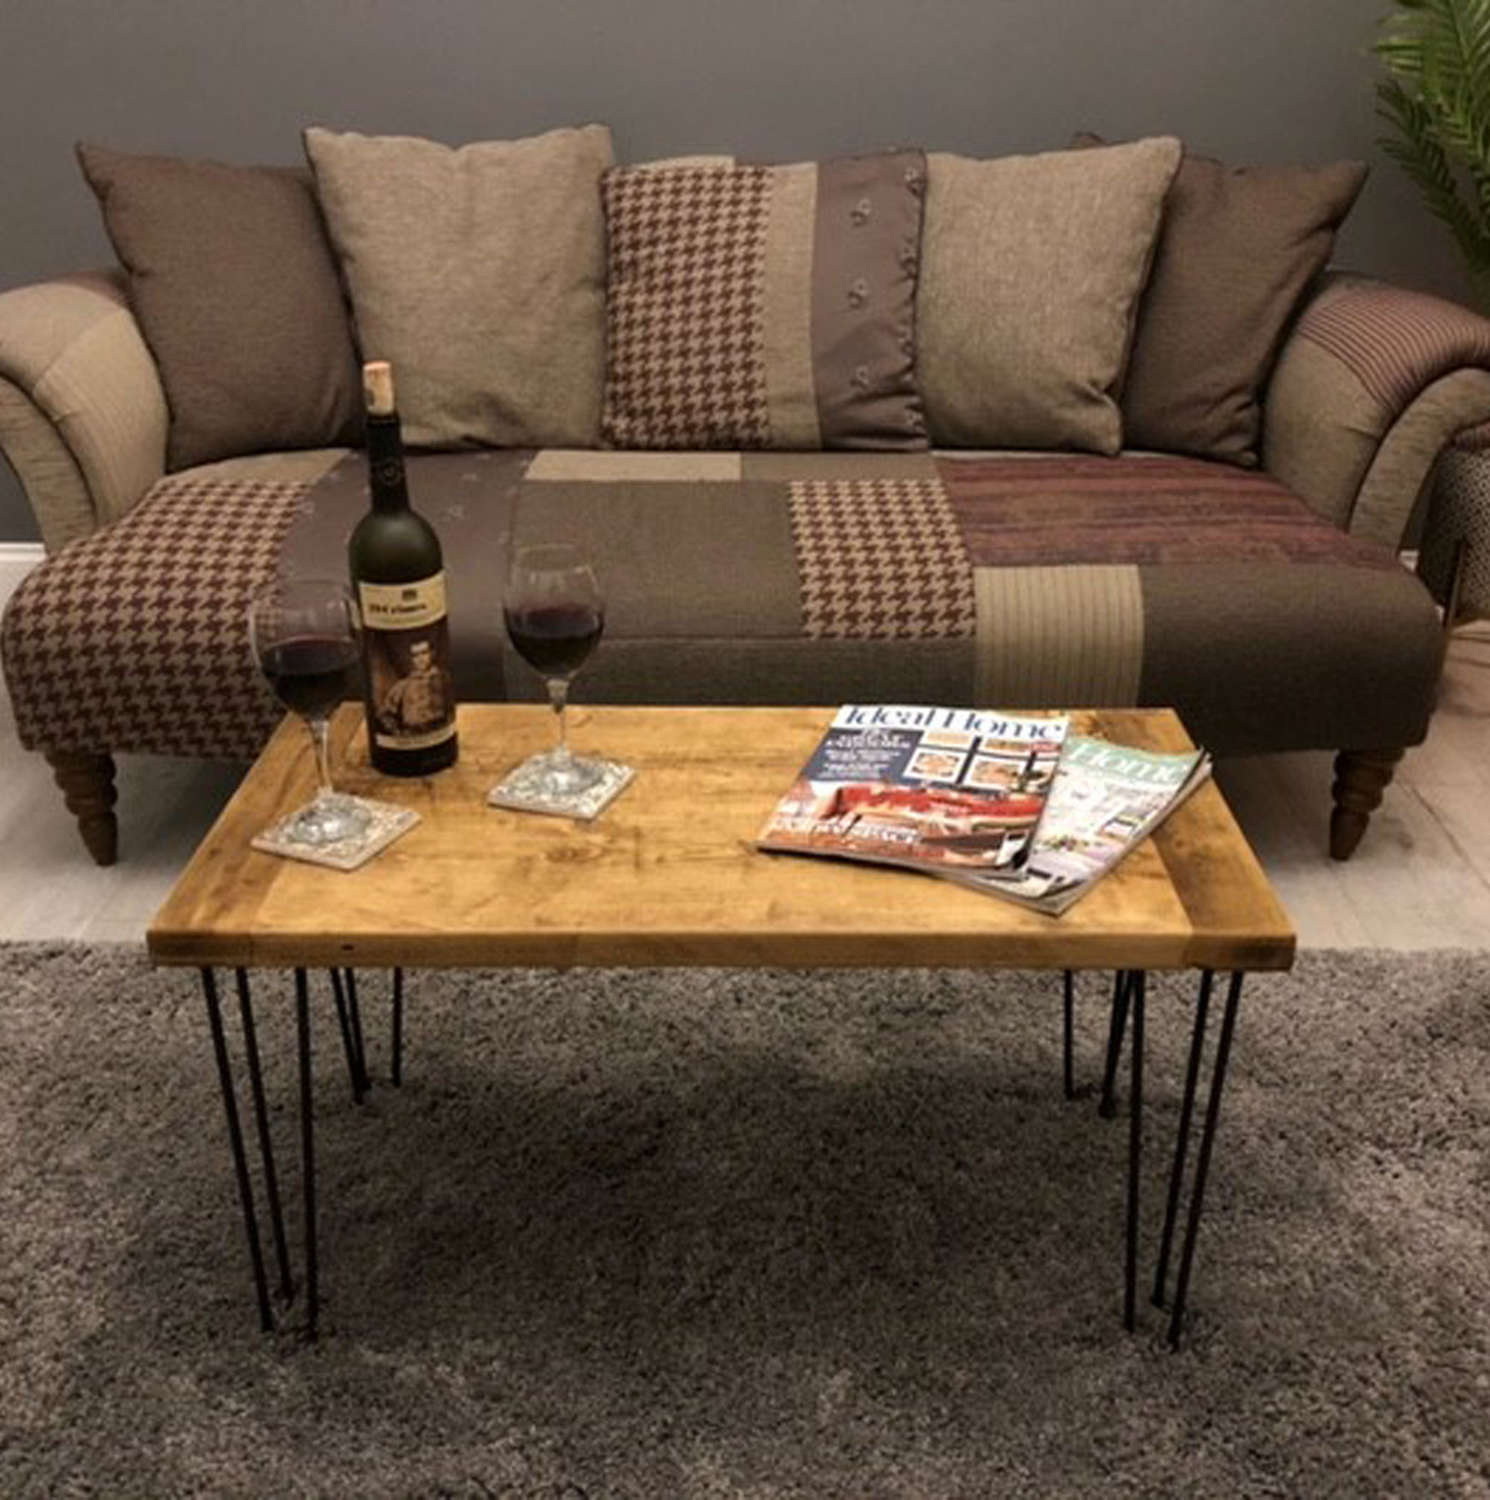 Reclaimed timber coffee table with hairpin legs